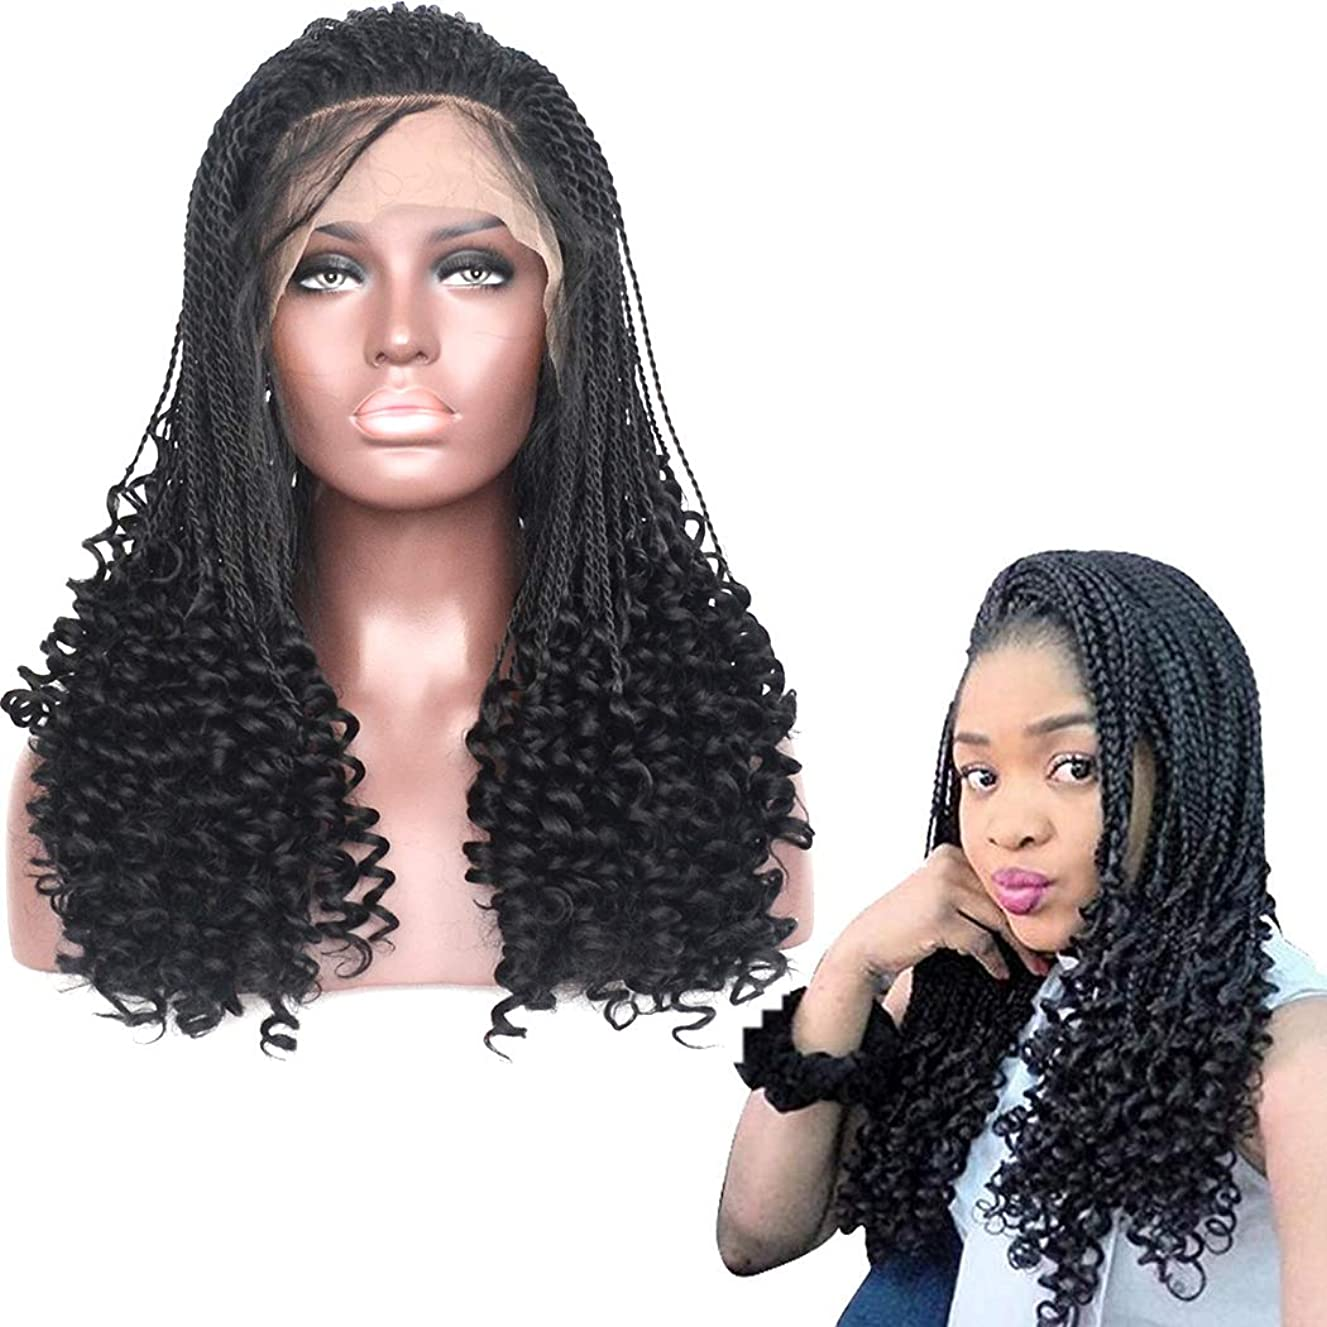 BLUPLE Micro Twist Braids With Curly End Lace Front Wig #1B Natural Black Braiding Styles Cornrows Half Braided Wigs Synthetic African Hair for Black Women with Baby Hair (24 inches, Twist Braided Cur